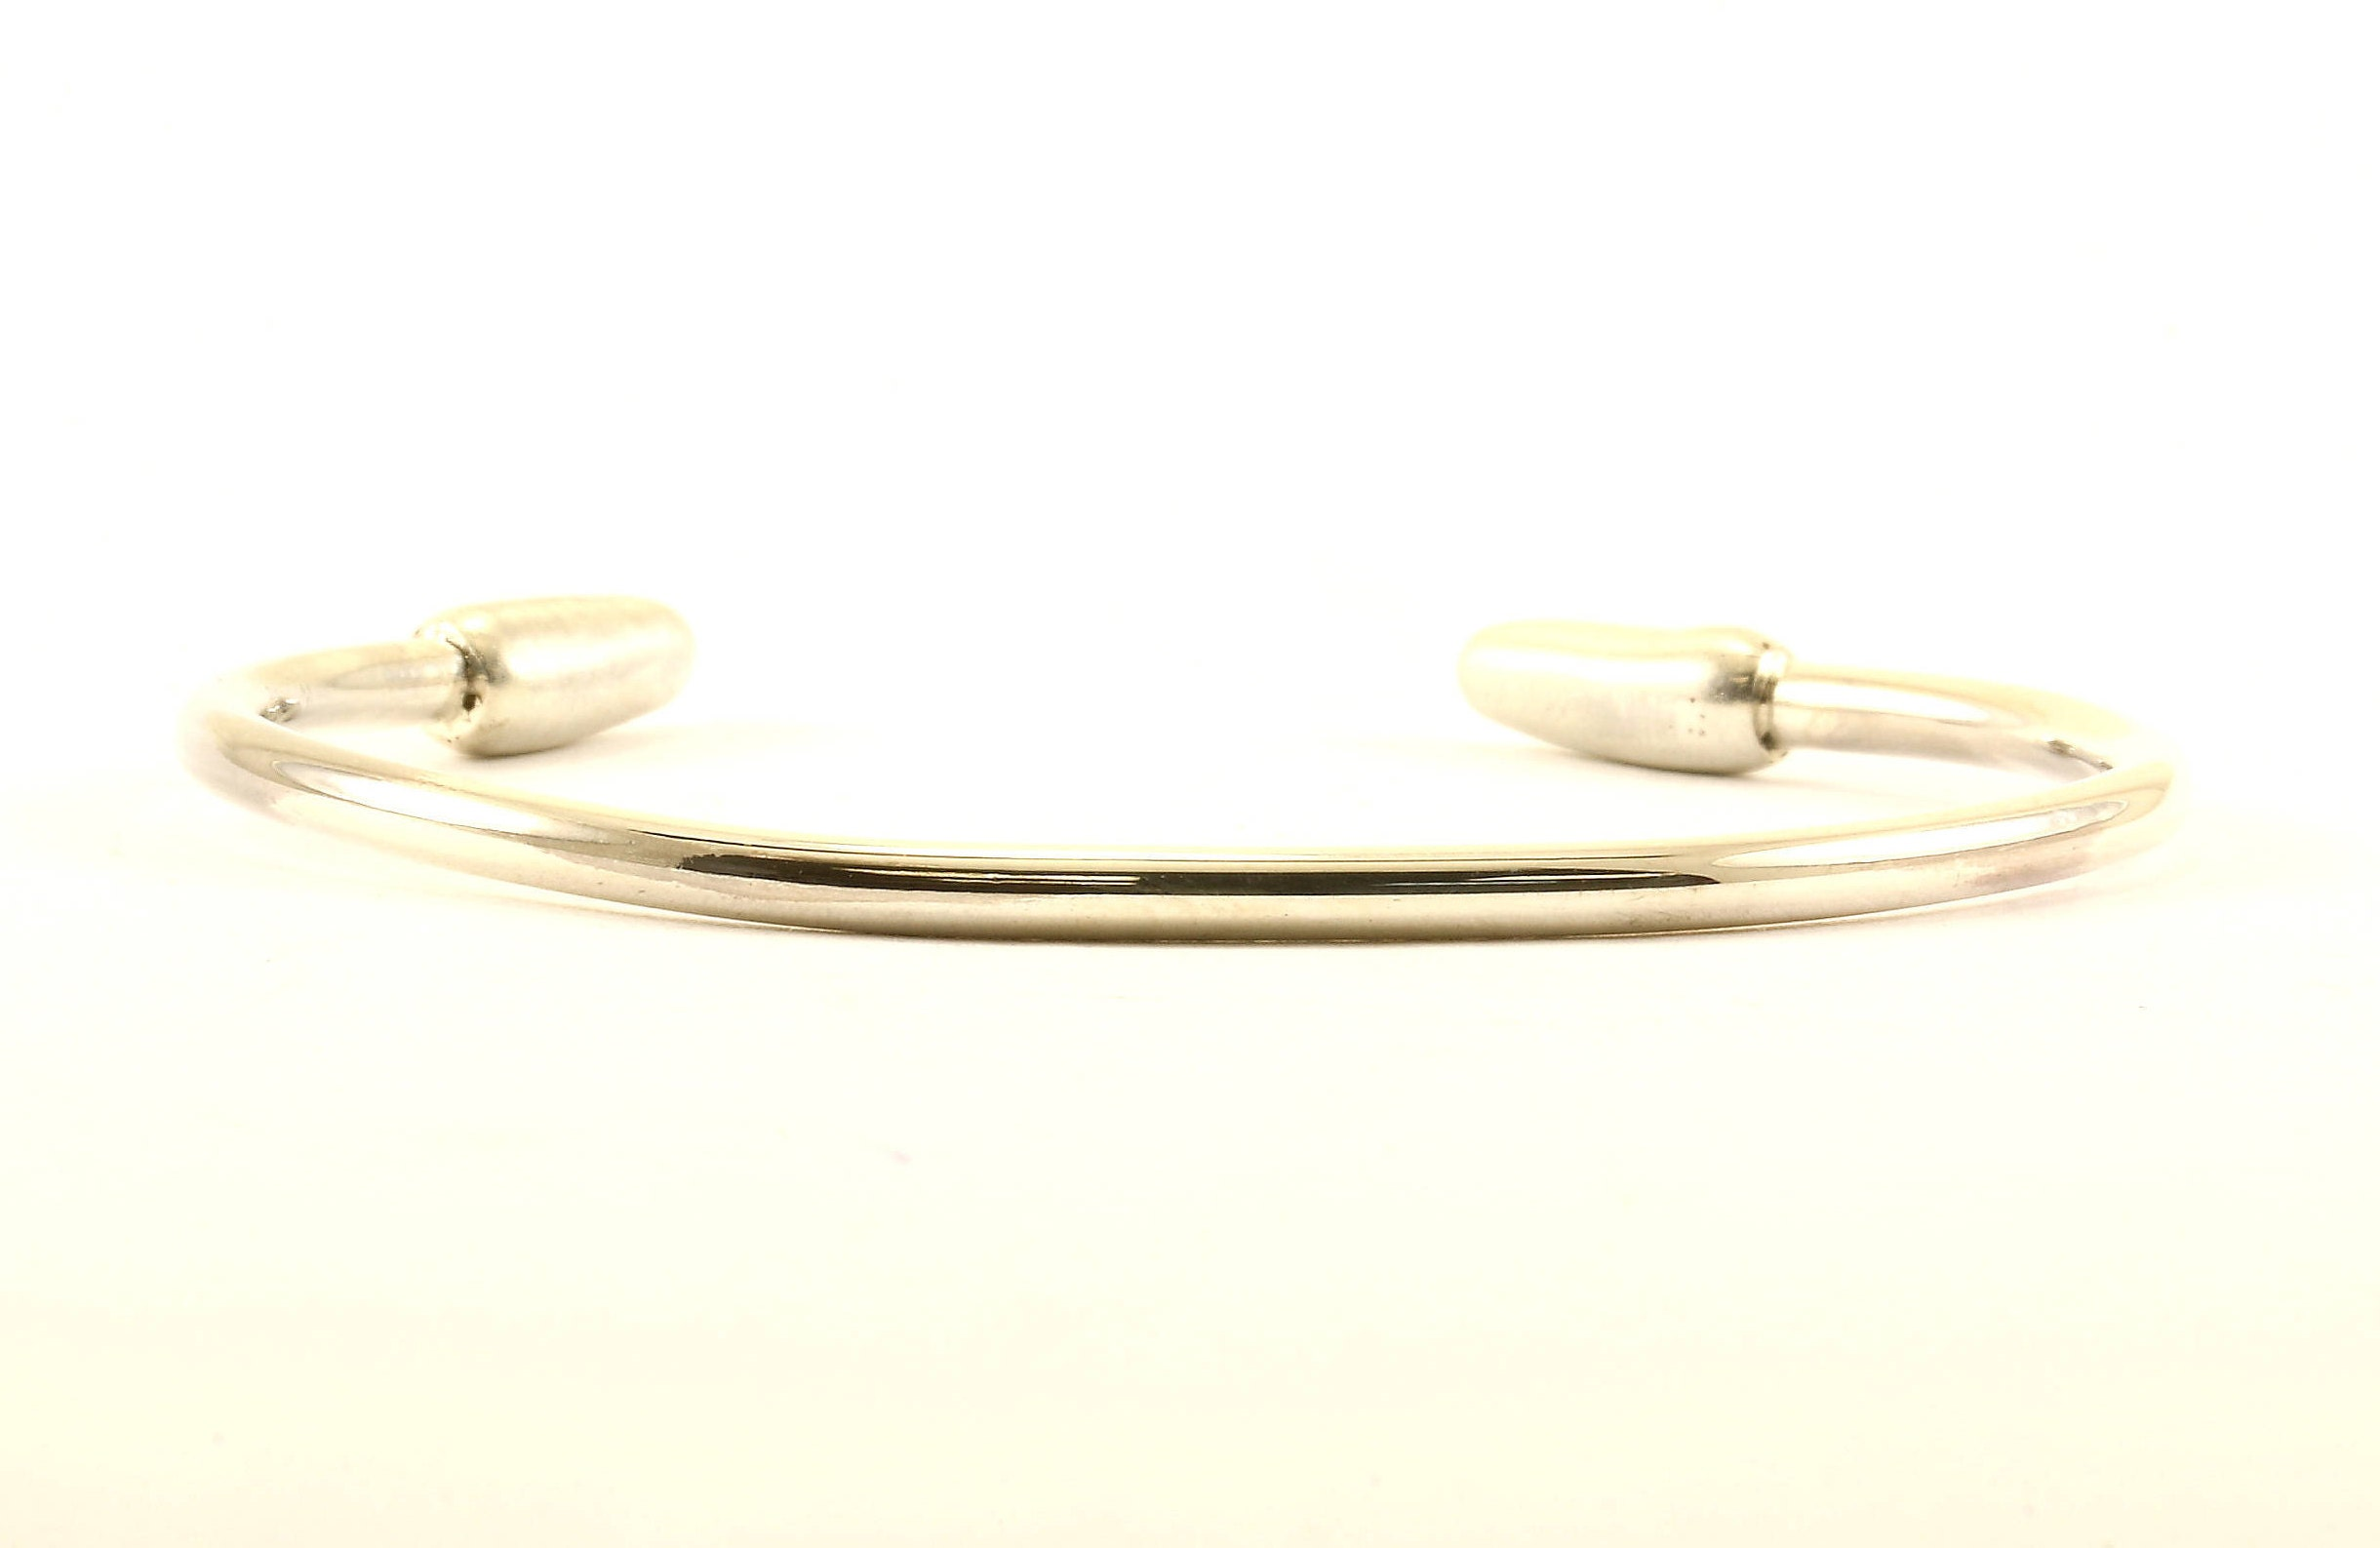 rhodium width silver weight bangles bangle mm plain grams sterling p bracelets plated length